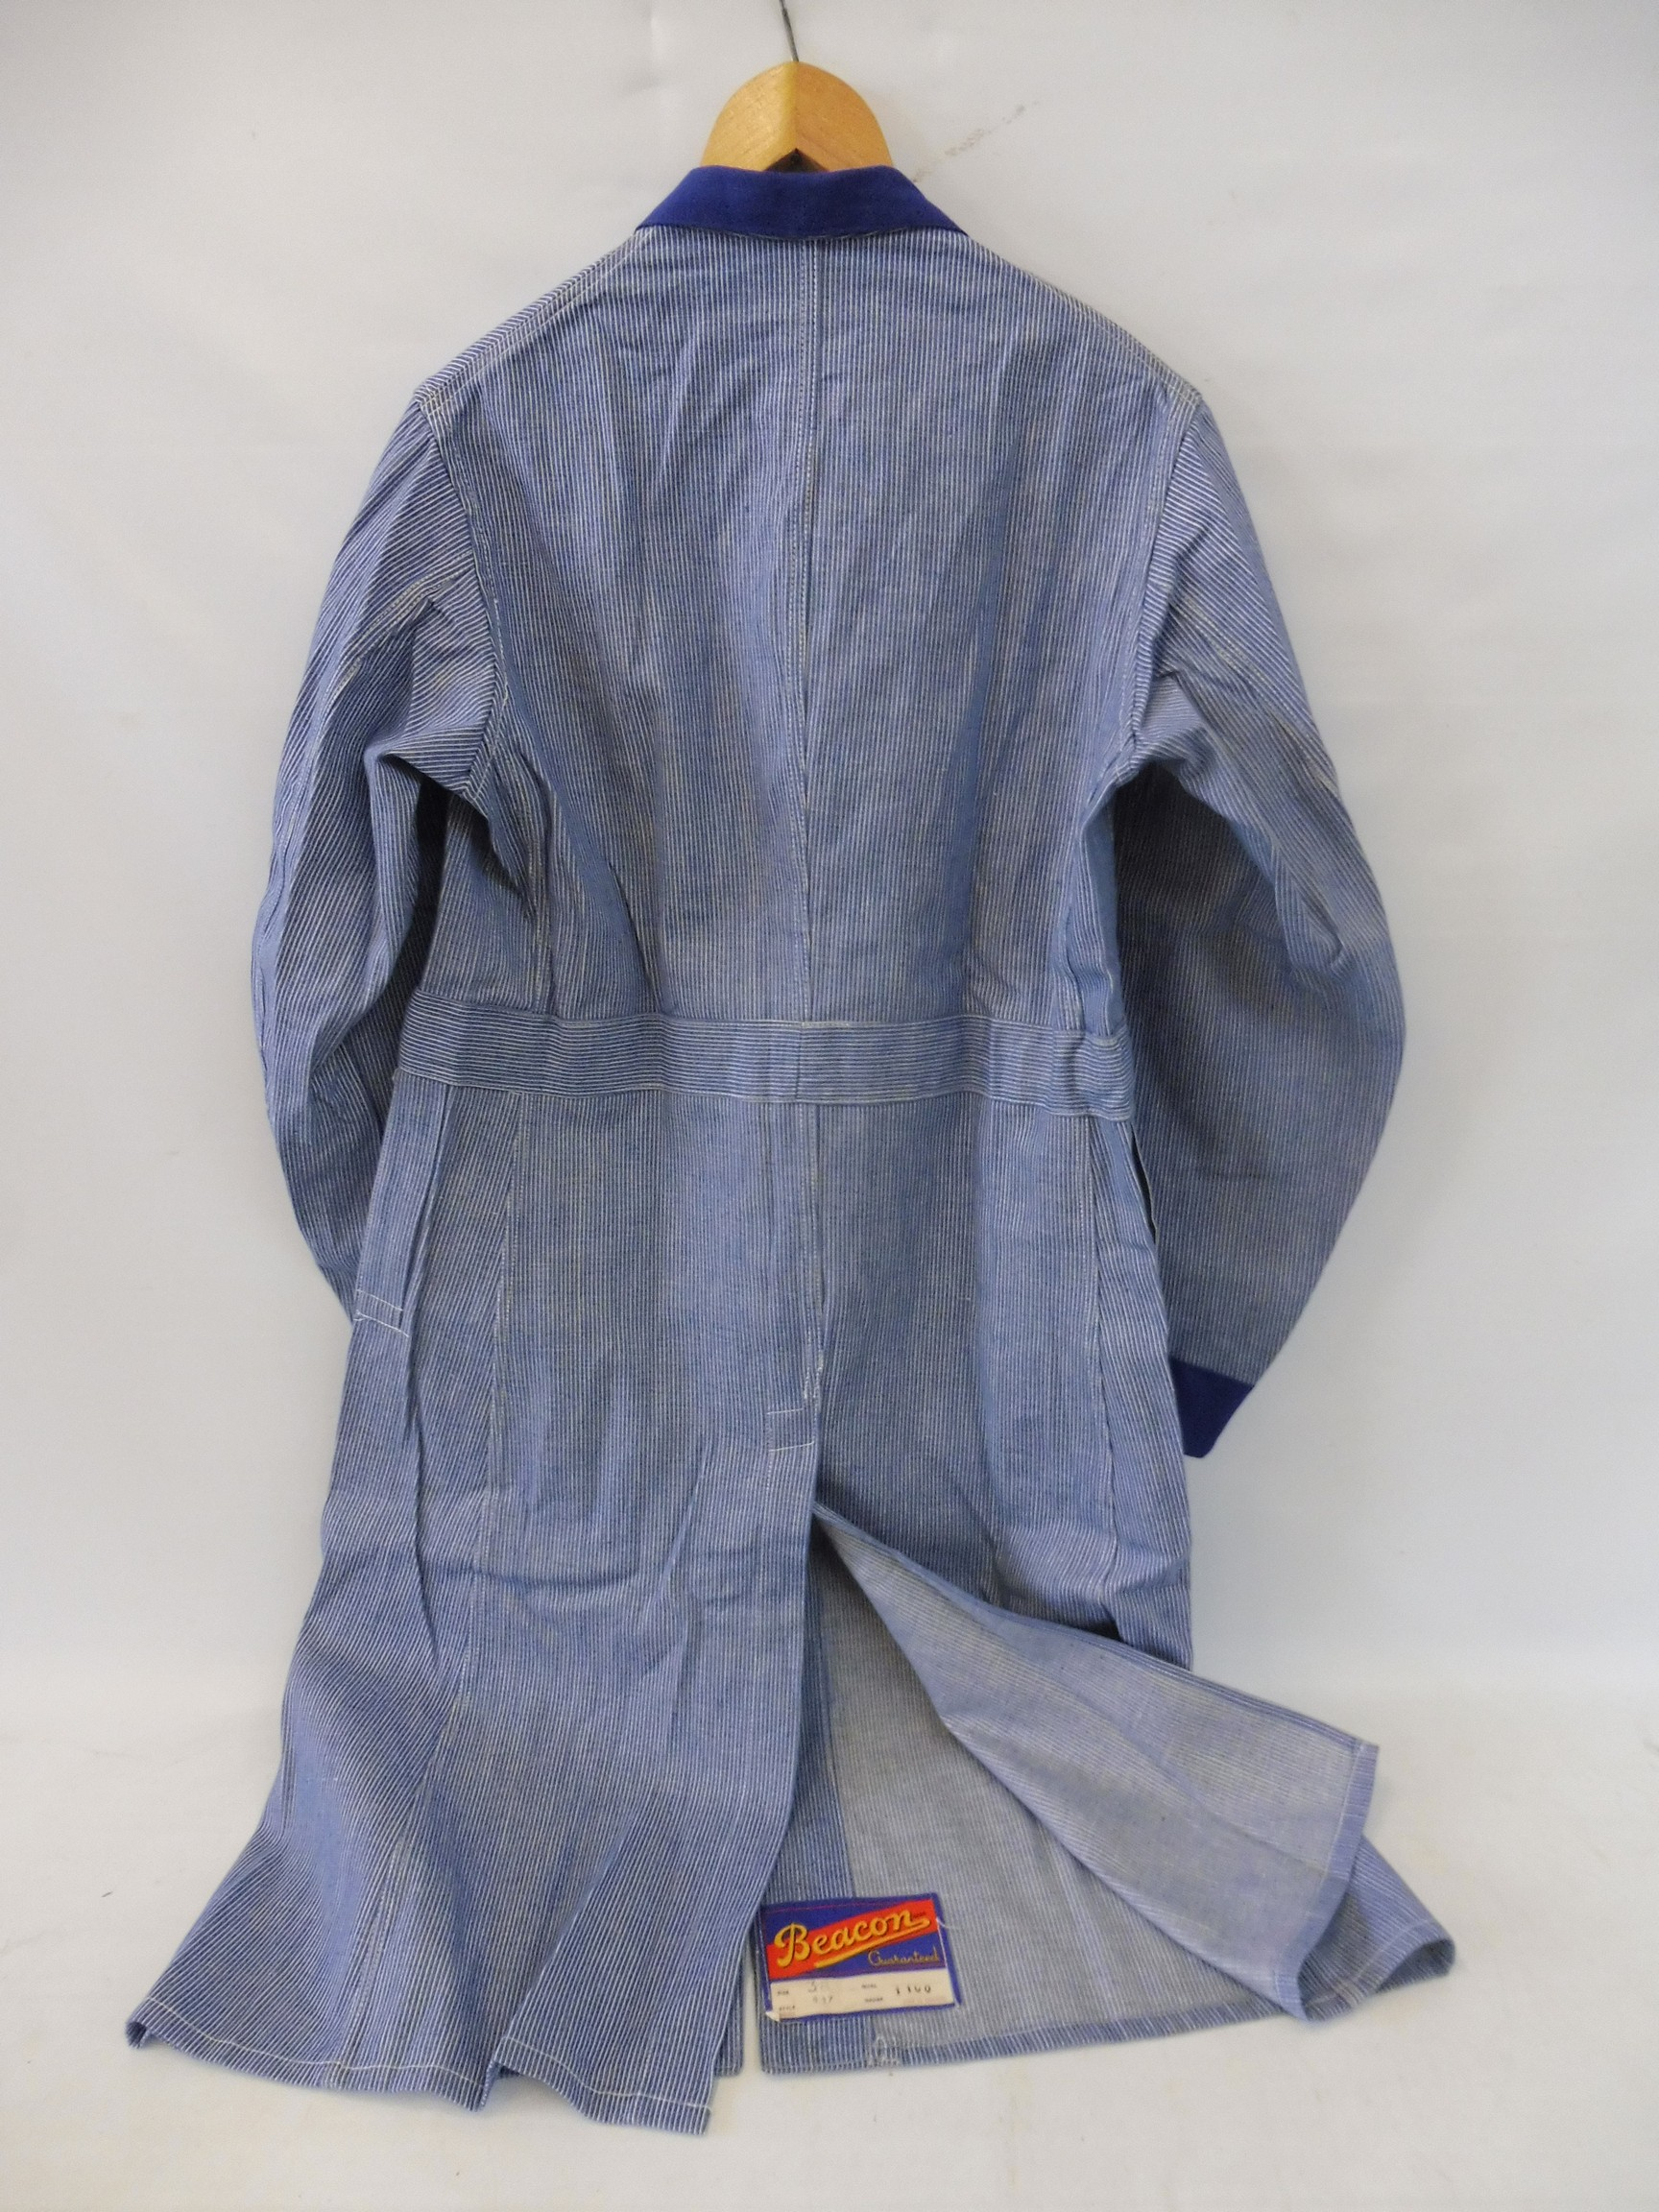 A new old stock overcoat with Esso branding, manufactured by Beacon Reg'd, size 38 (slightly - Image 4 of 6